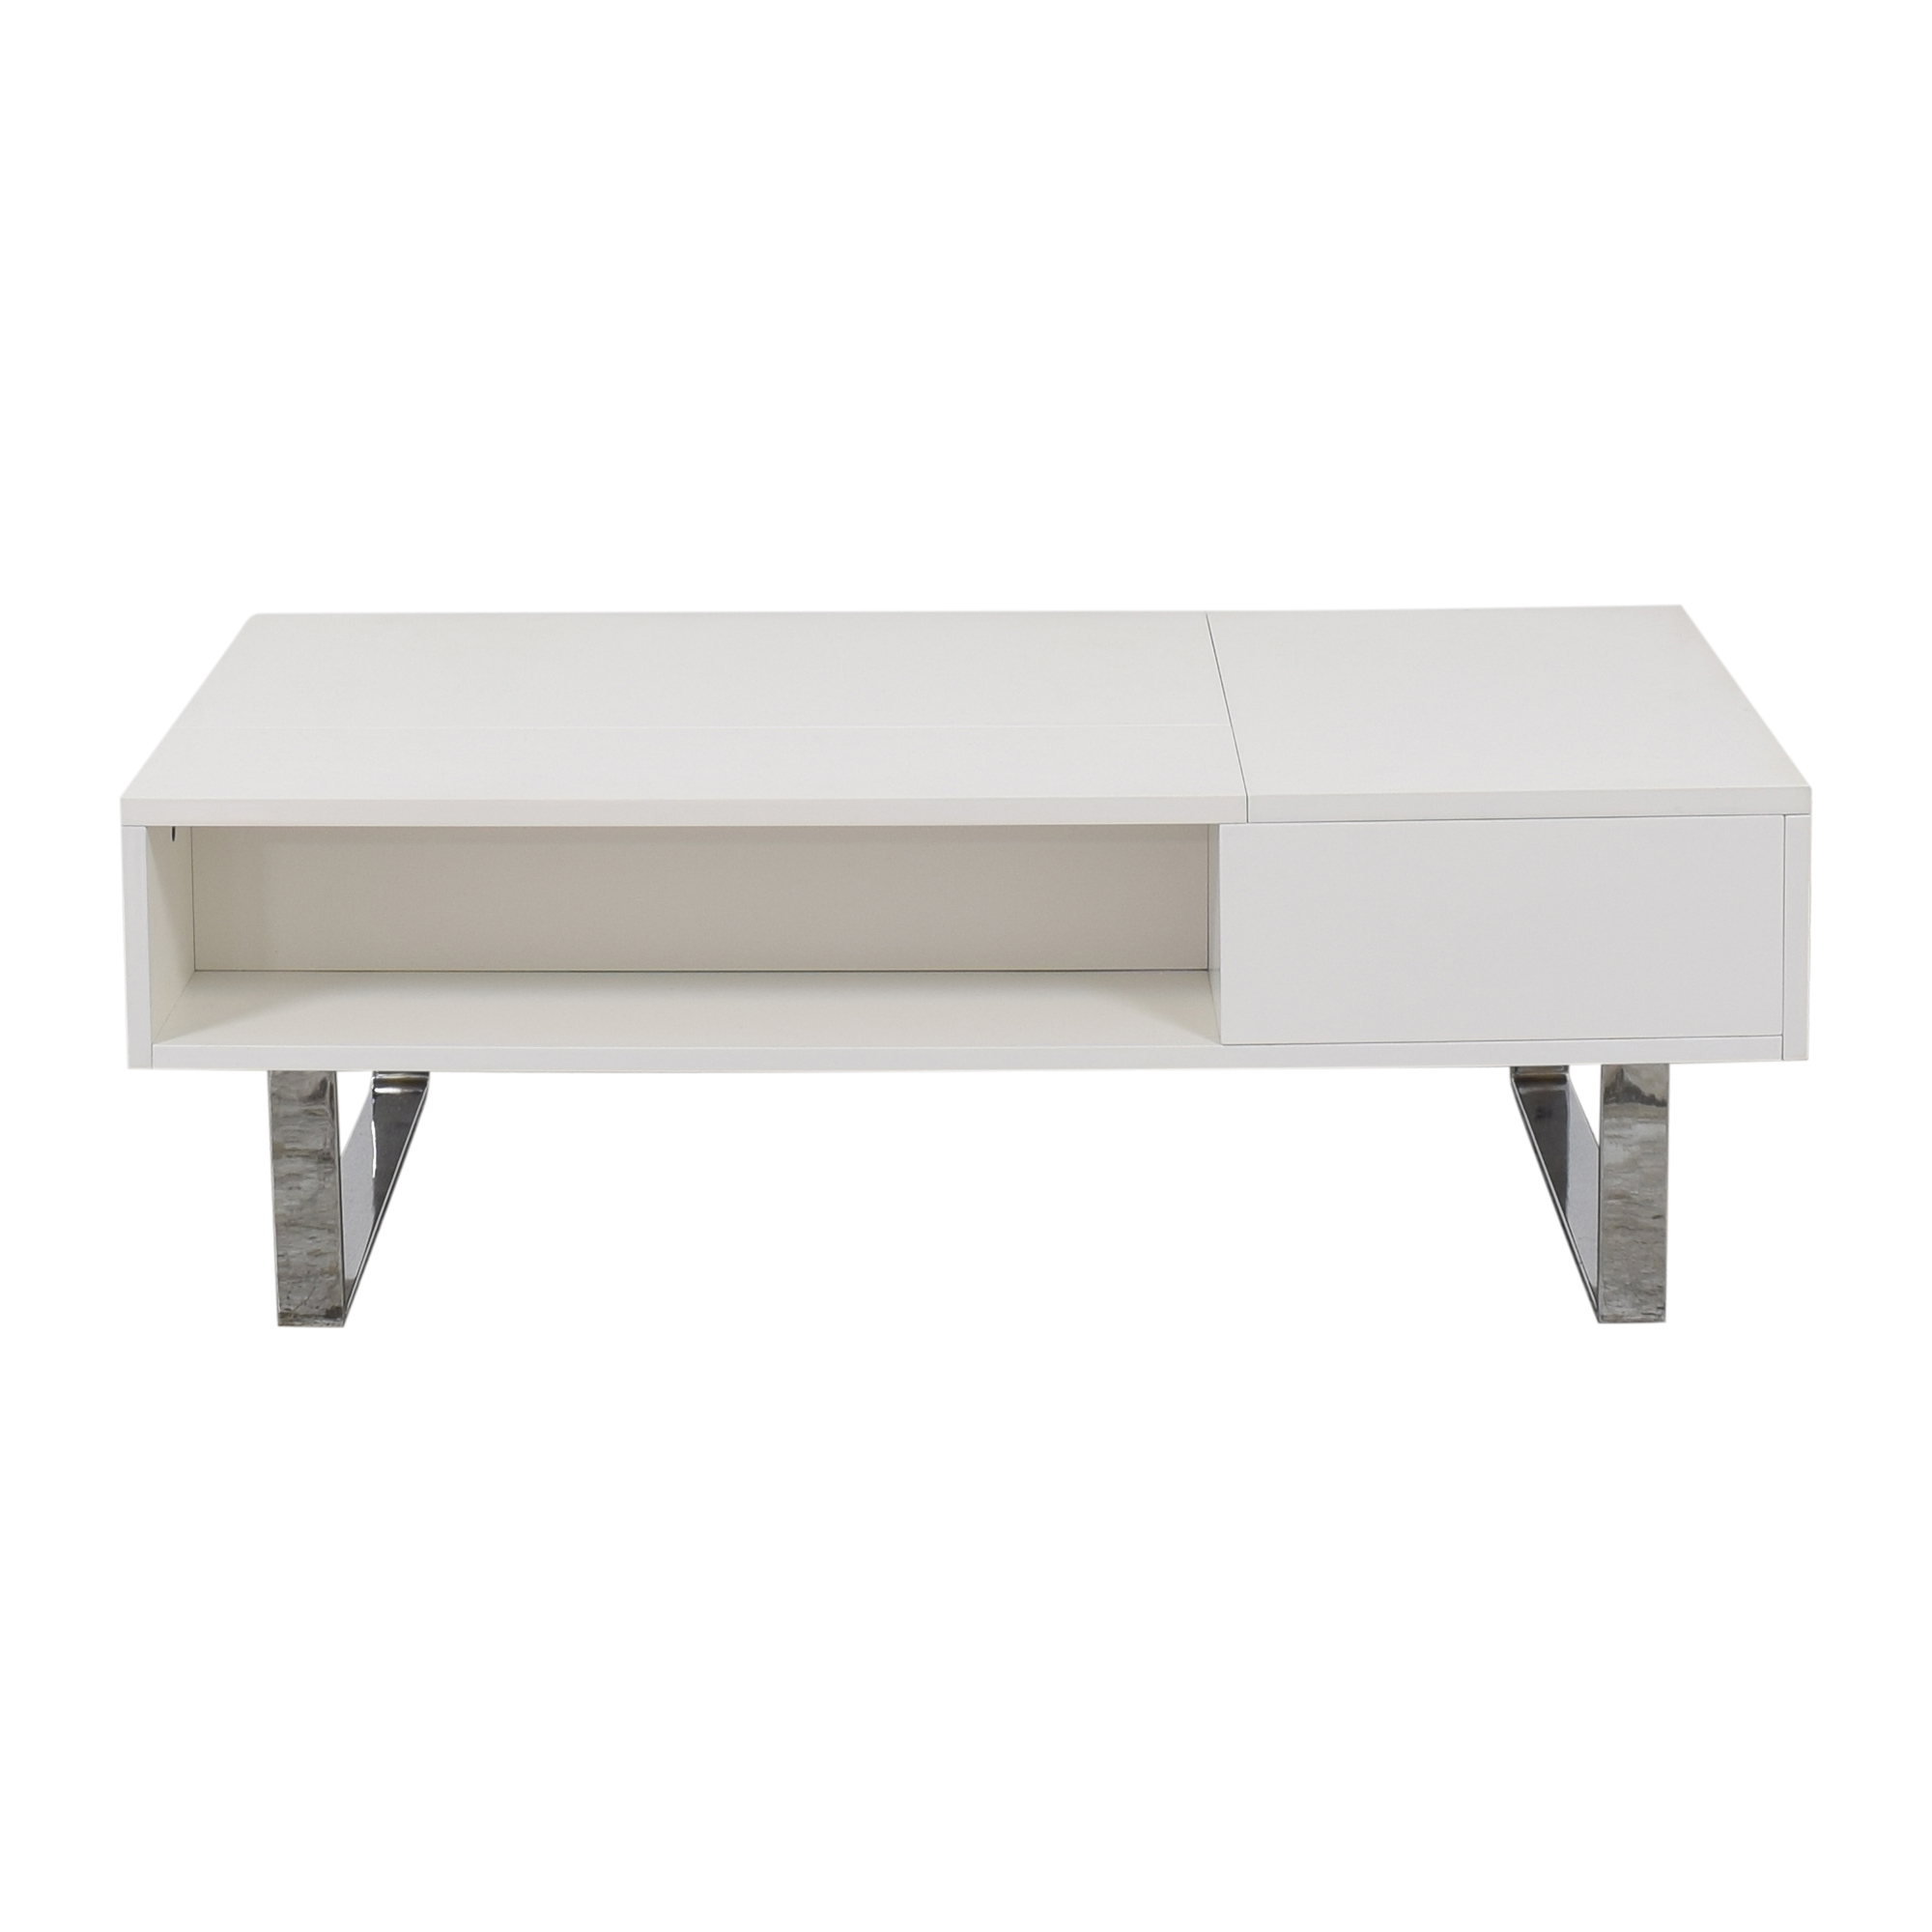 Expand Furniture Expand Furniture Occam Lift Top Coffee Table